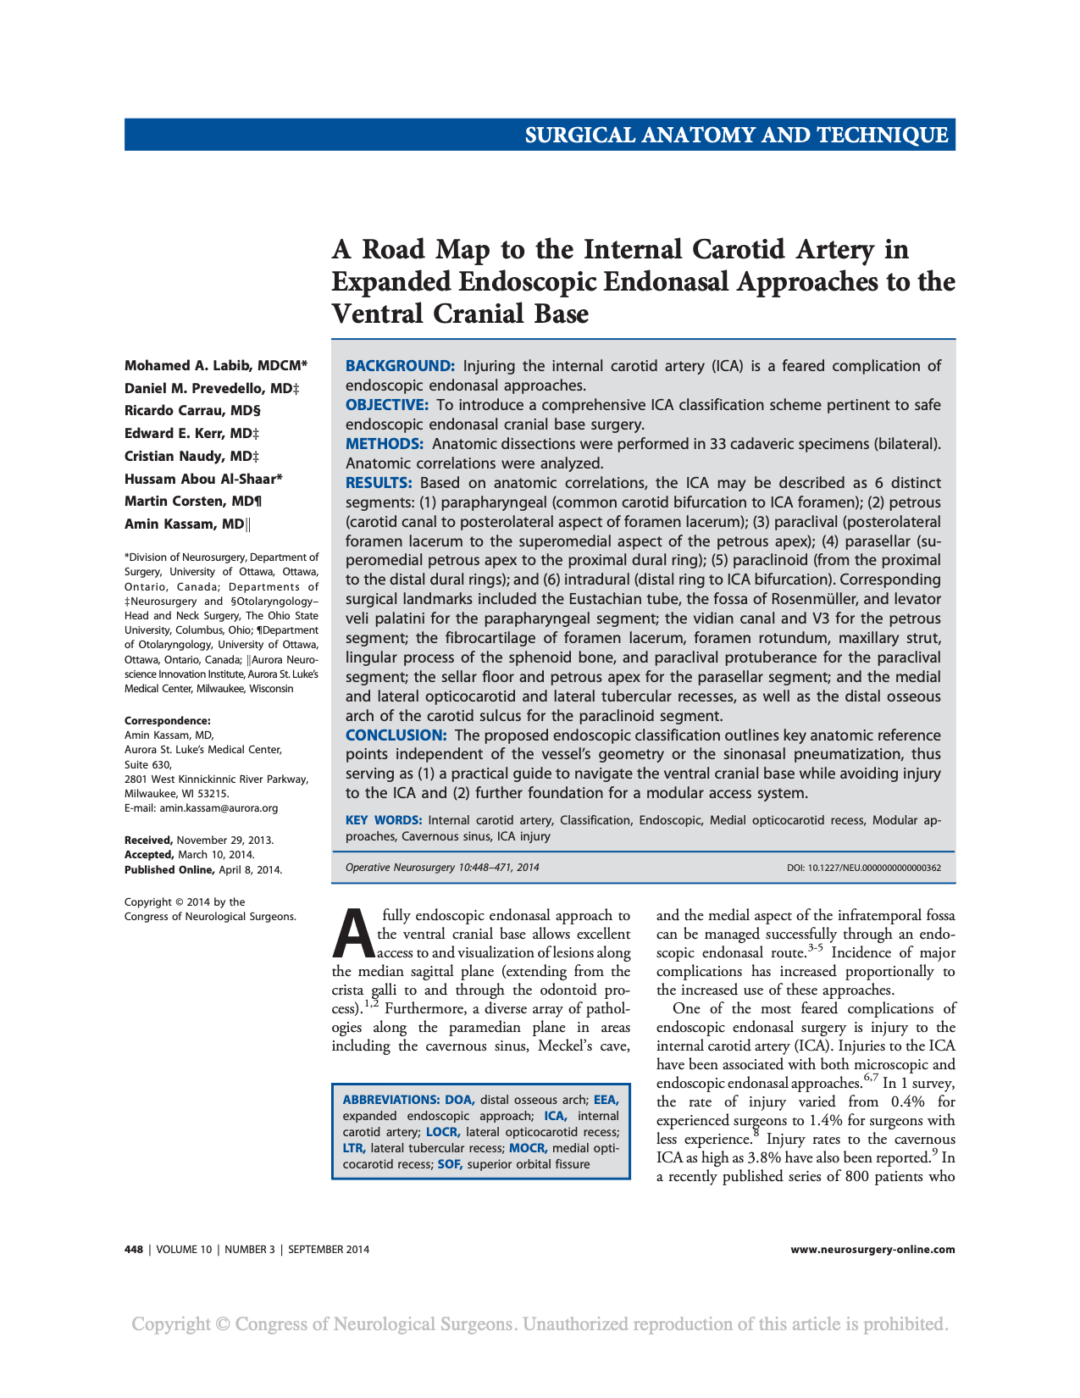 A Road Map to the Internal Carotid Artery in Expanded Endoscopic Endonasal Approaches to the Ventral Cranial Base